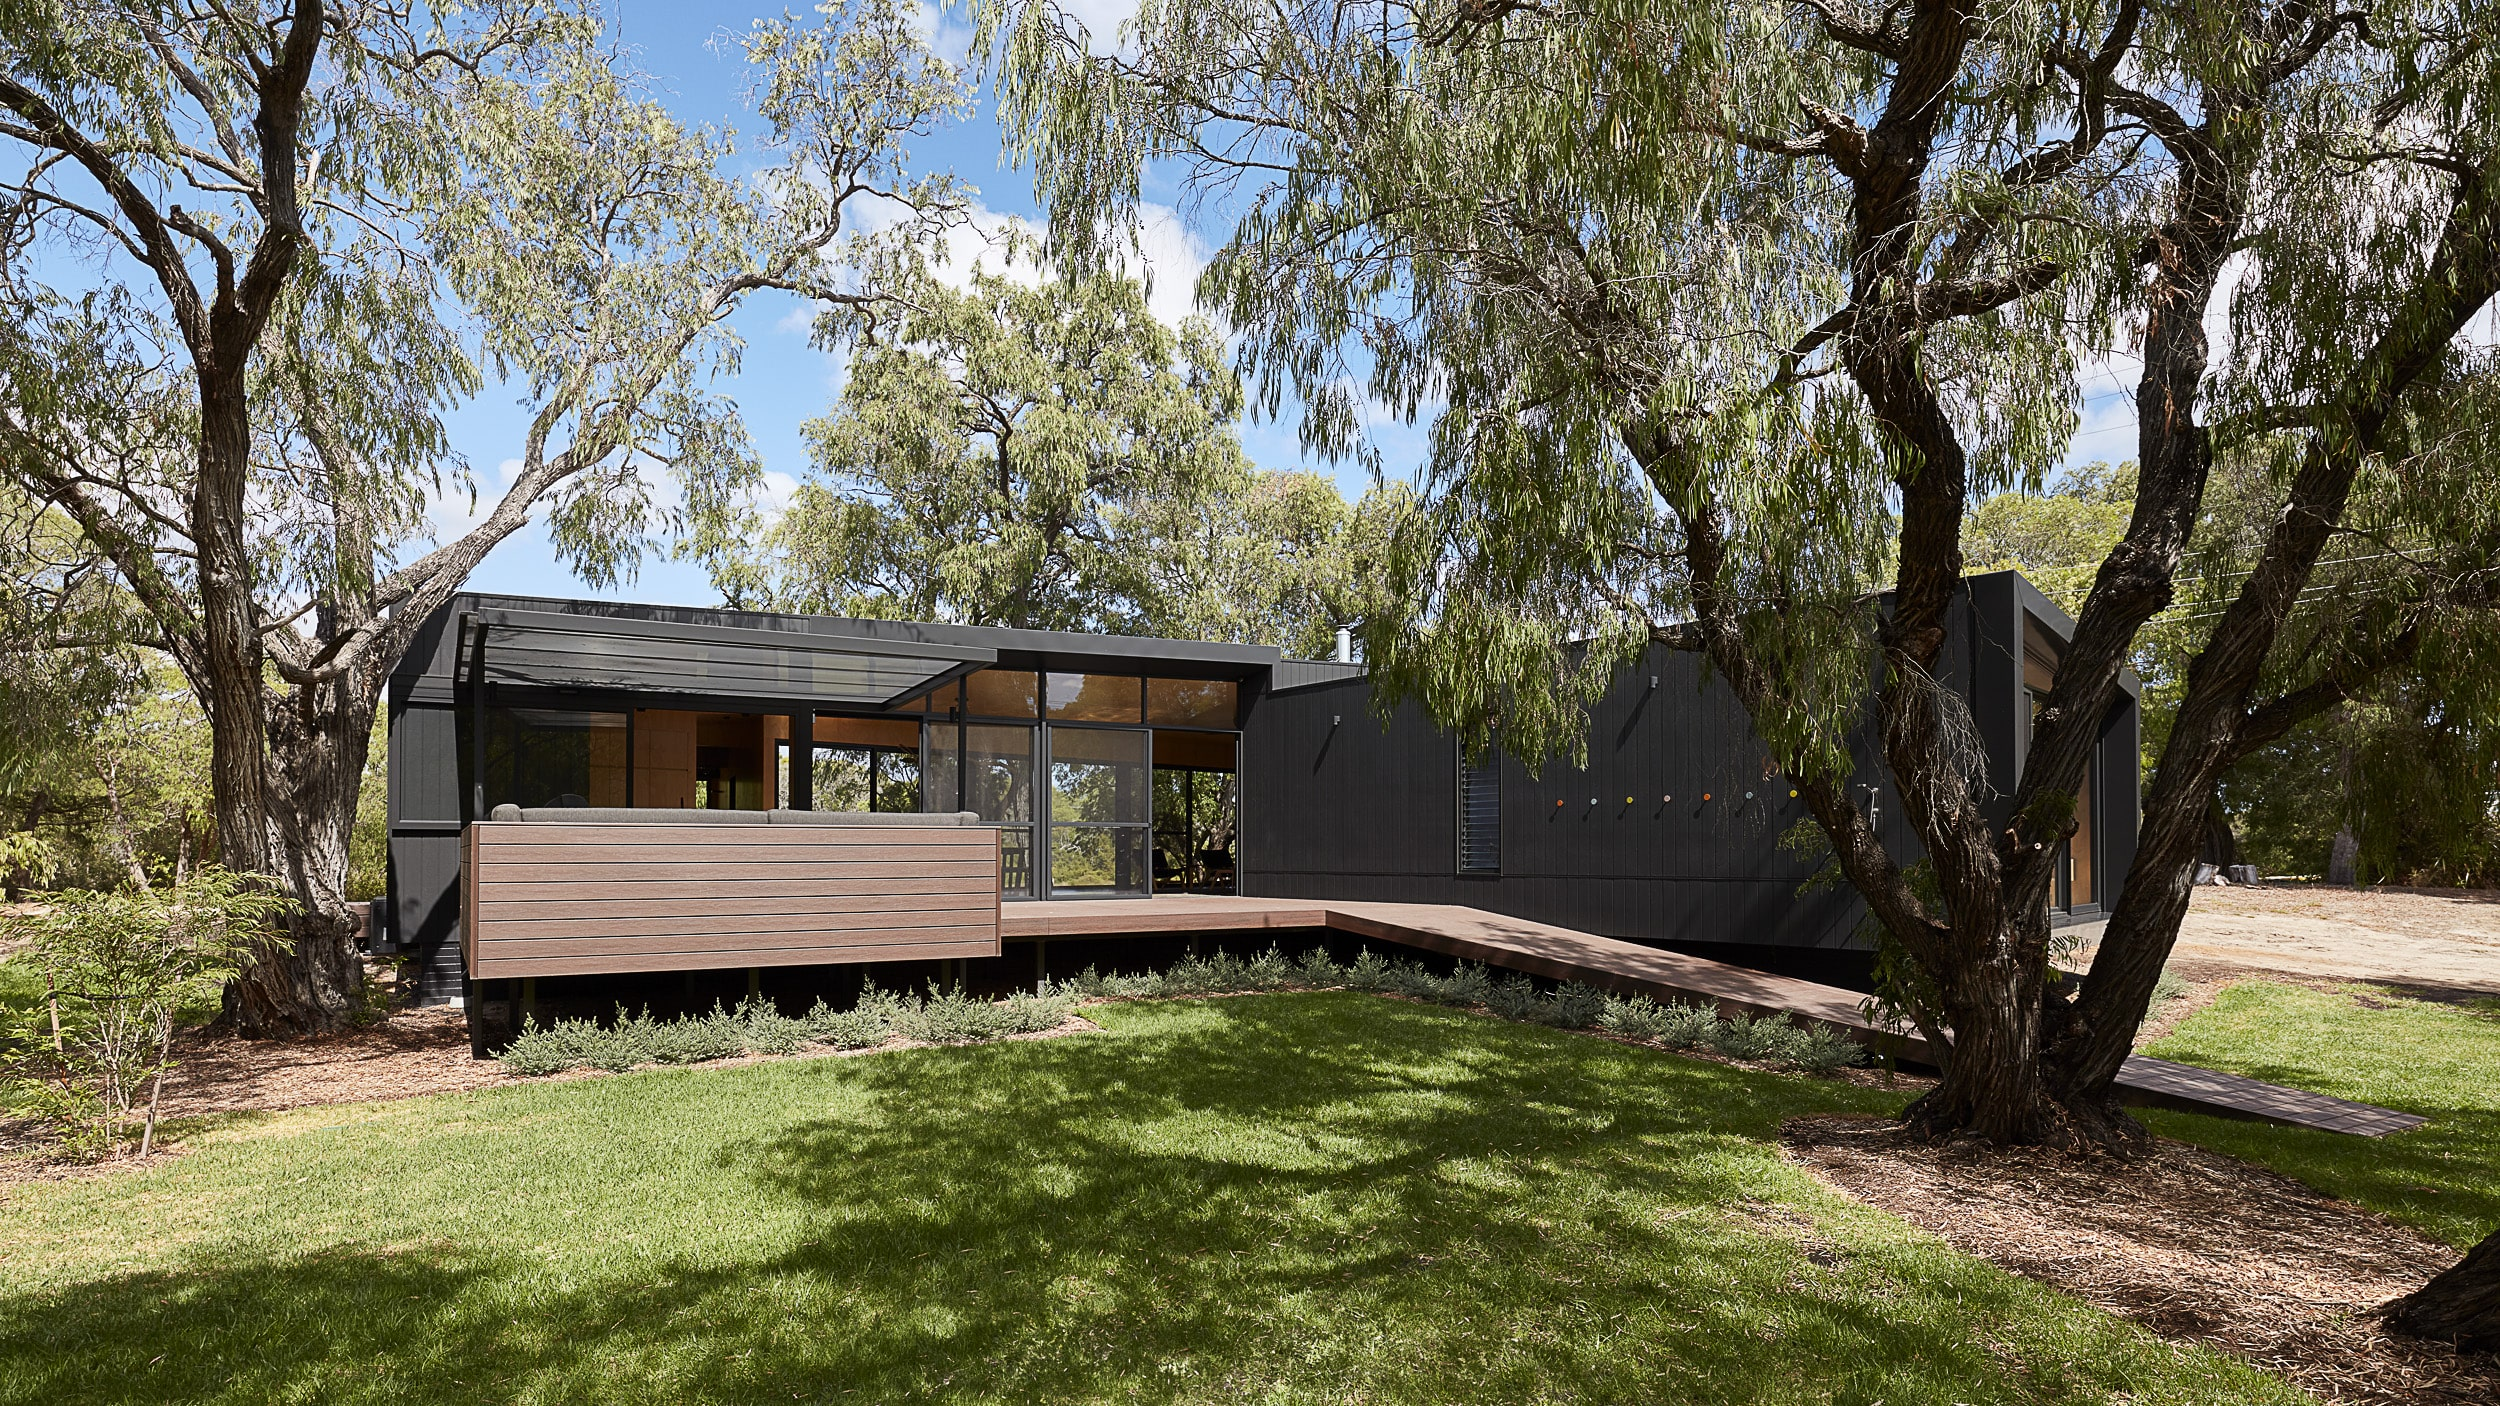 82 Degrees By Meaghan White Architect Local Australian Design And Interiors Quindalup, Wa Image 2